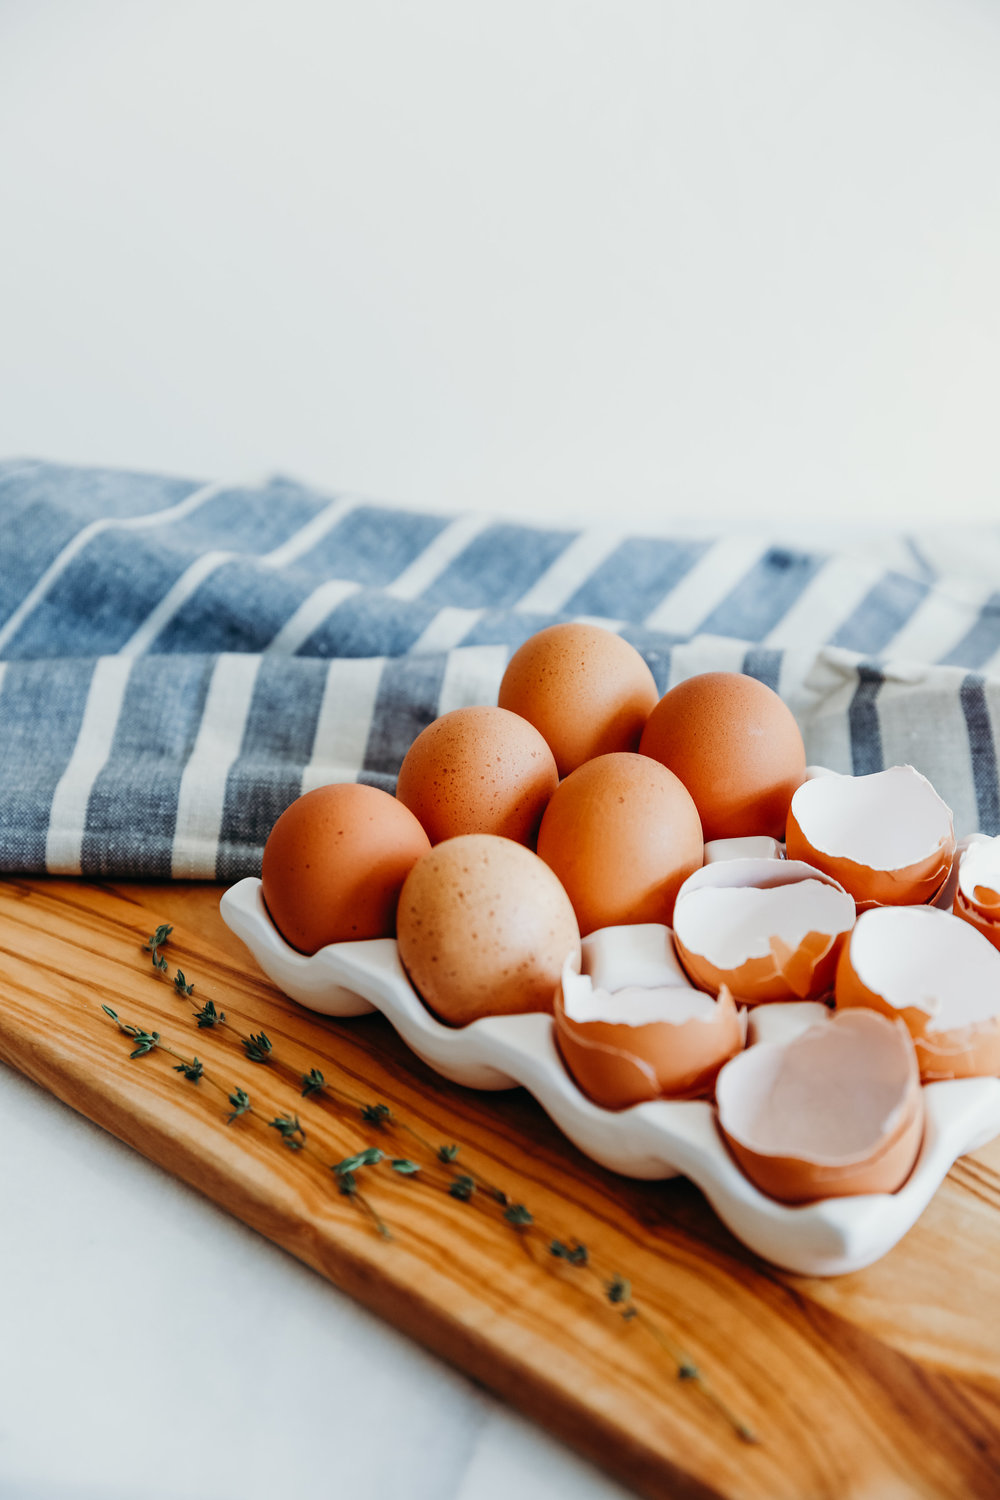 Eggs | Food Photography | Food Styling | Hillary Jeanne Photography